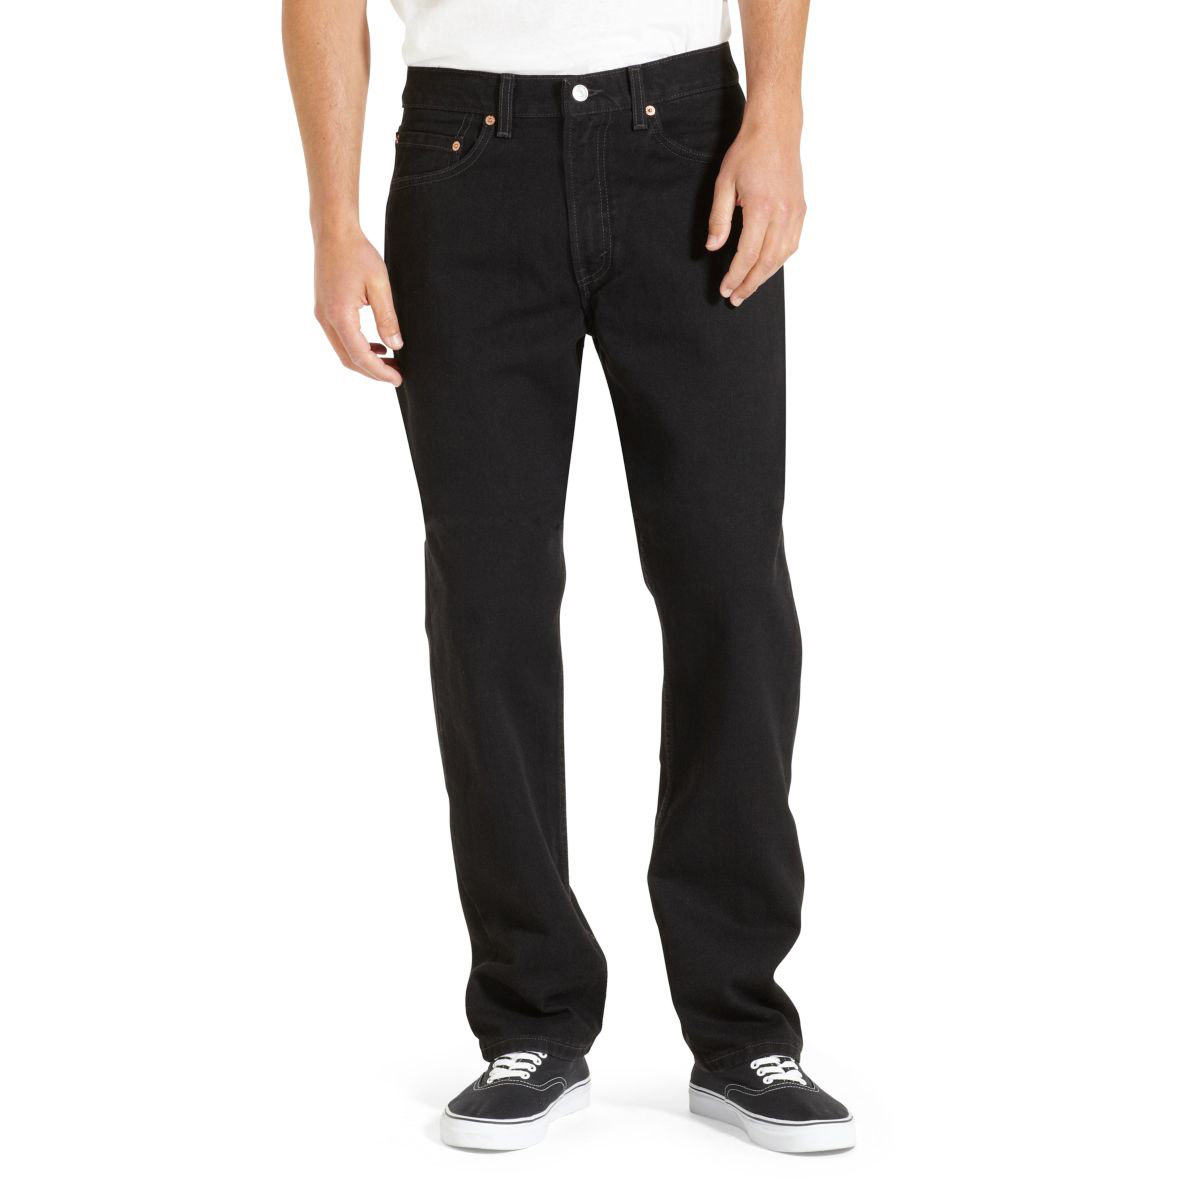 Levi's Men's 505 Regular Fit Jeans - Black, 36/29